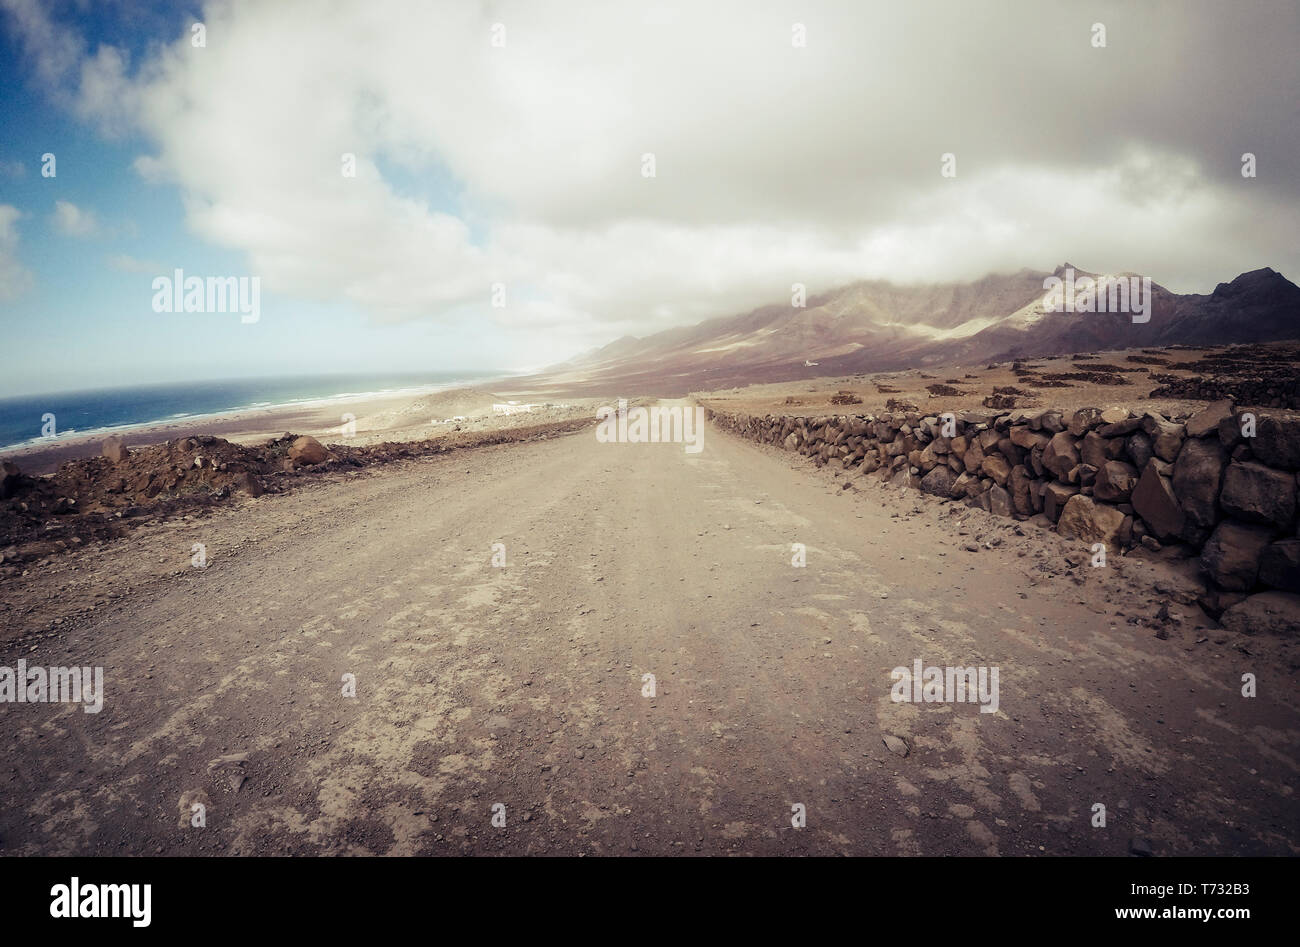 Long off road terrain way road viewed from ground level with mountains and coastline ocean view - travel and adventure concept for alternative vacatio Stock Photo